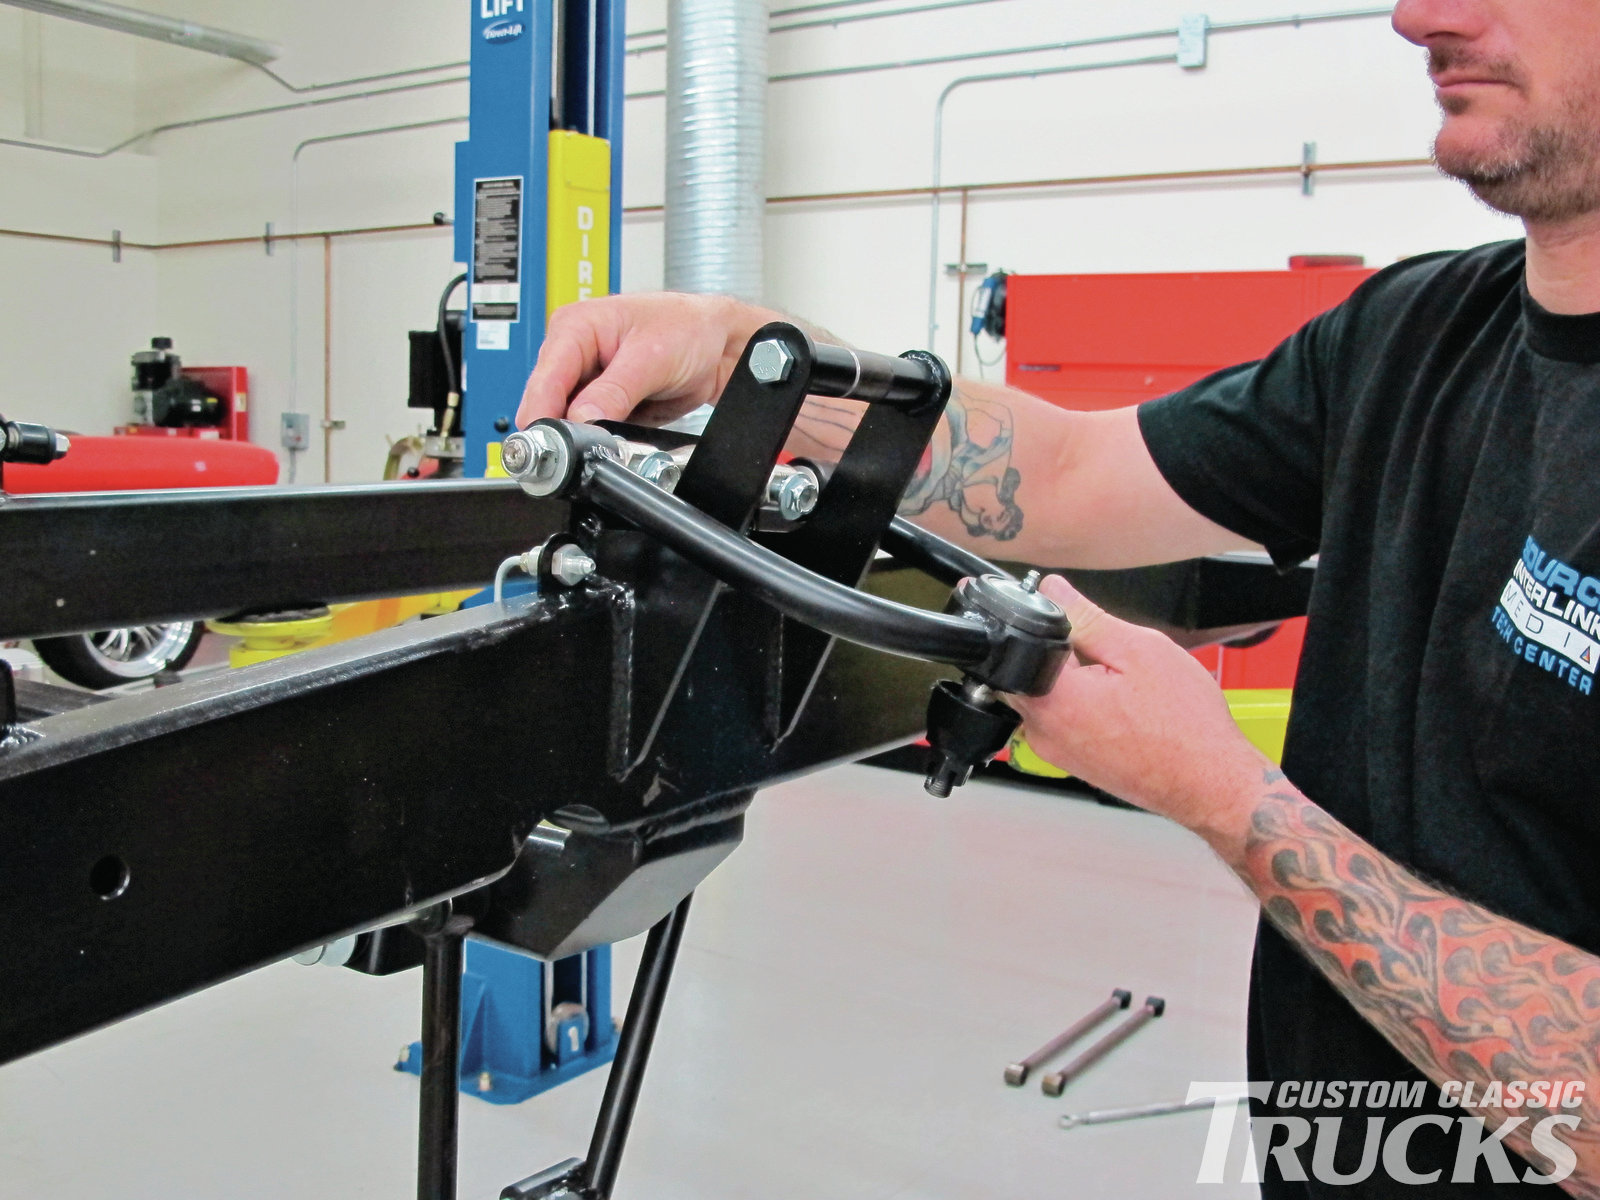 7. To ensure the front suspension stays in alignment, the upper A-arms attach to vertical plates. This allows the use of shims for caster and camber adjustments rather than the slots and sliding bolts often seen.